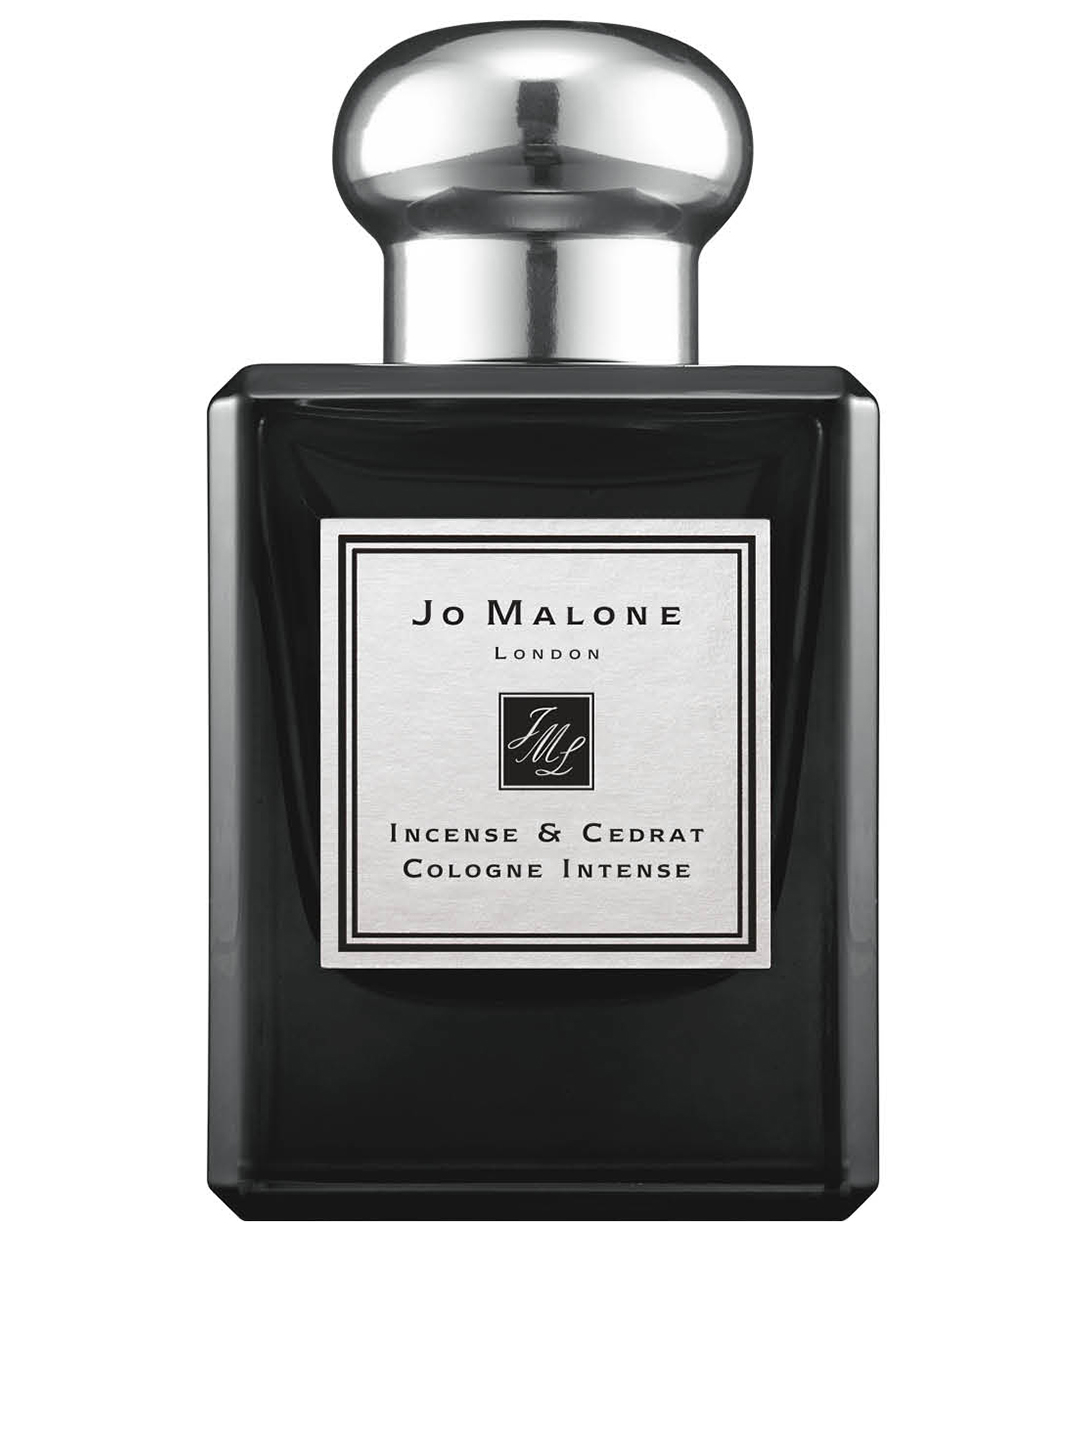 JO MALONE LONDON Cologne Intense Incense & Cedrat Créateurs